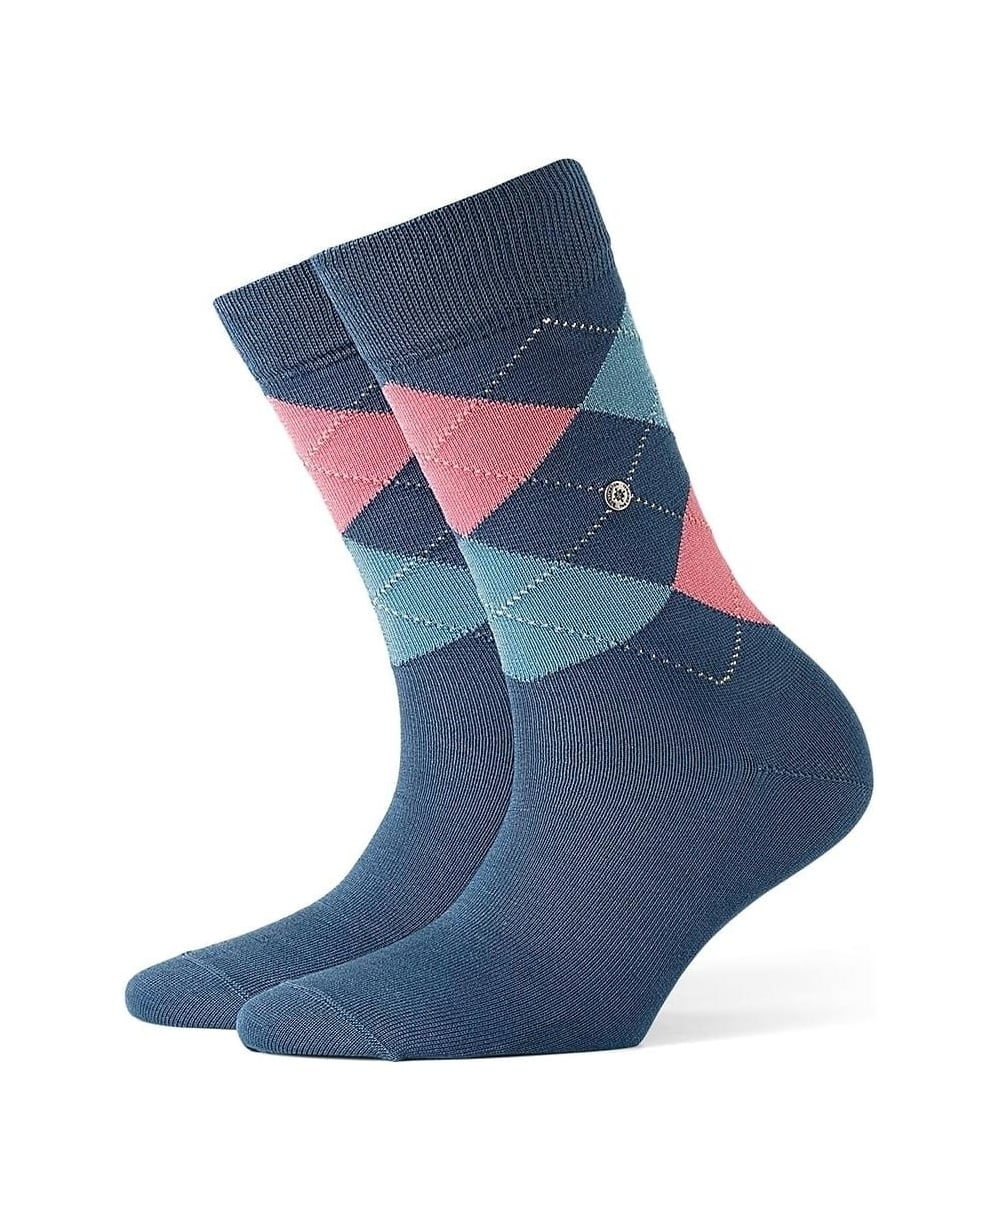 burlington covent garden cotton argyle socks burlington